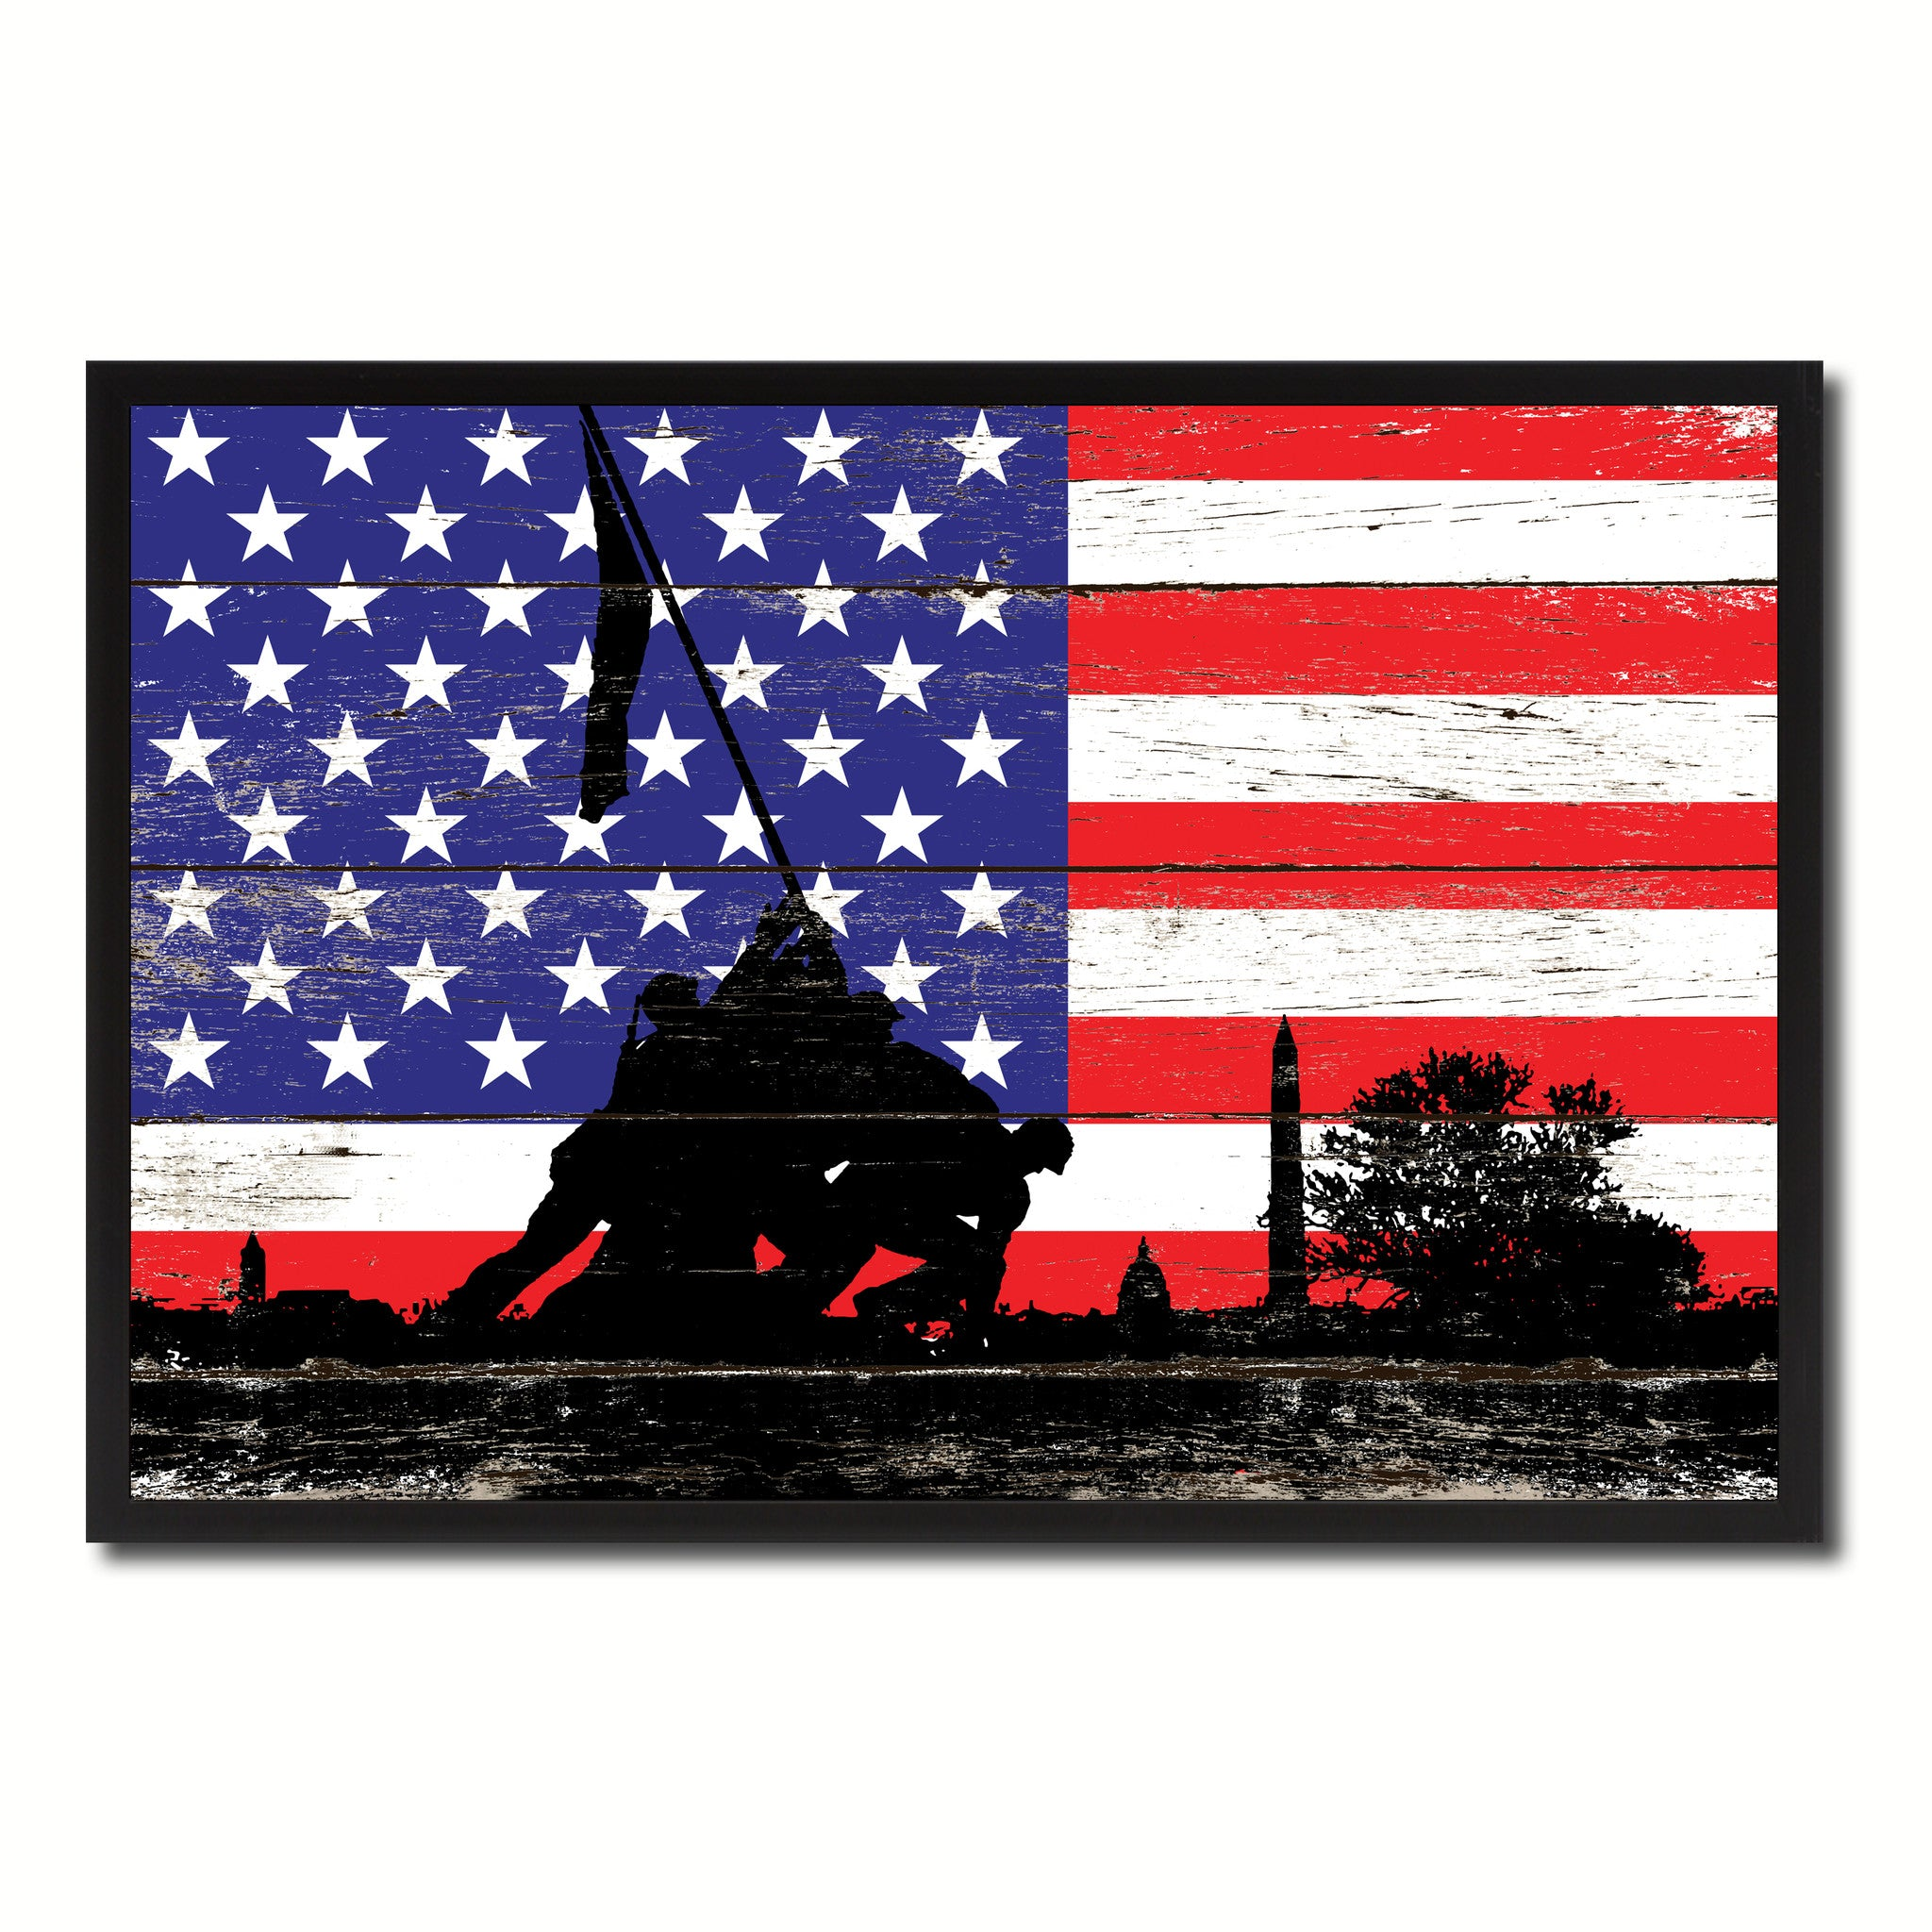 Iwo jima wwii veterans memorial usa flag shabby chic for Home decor online shopping usa